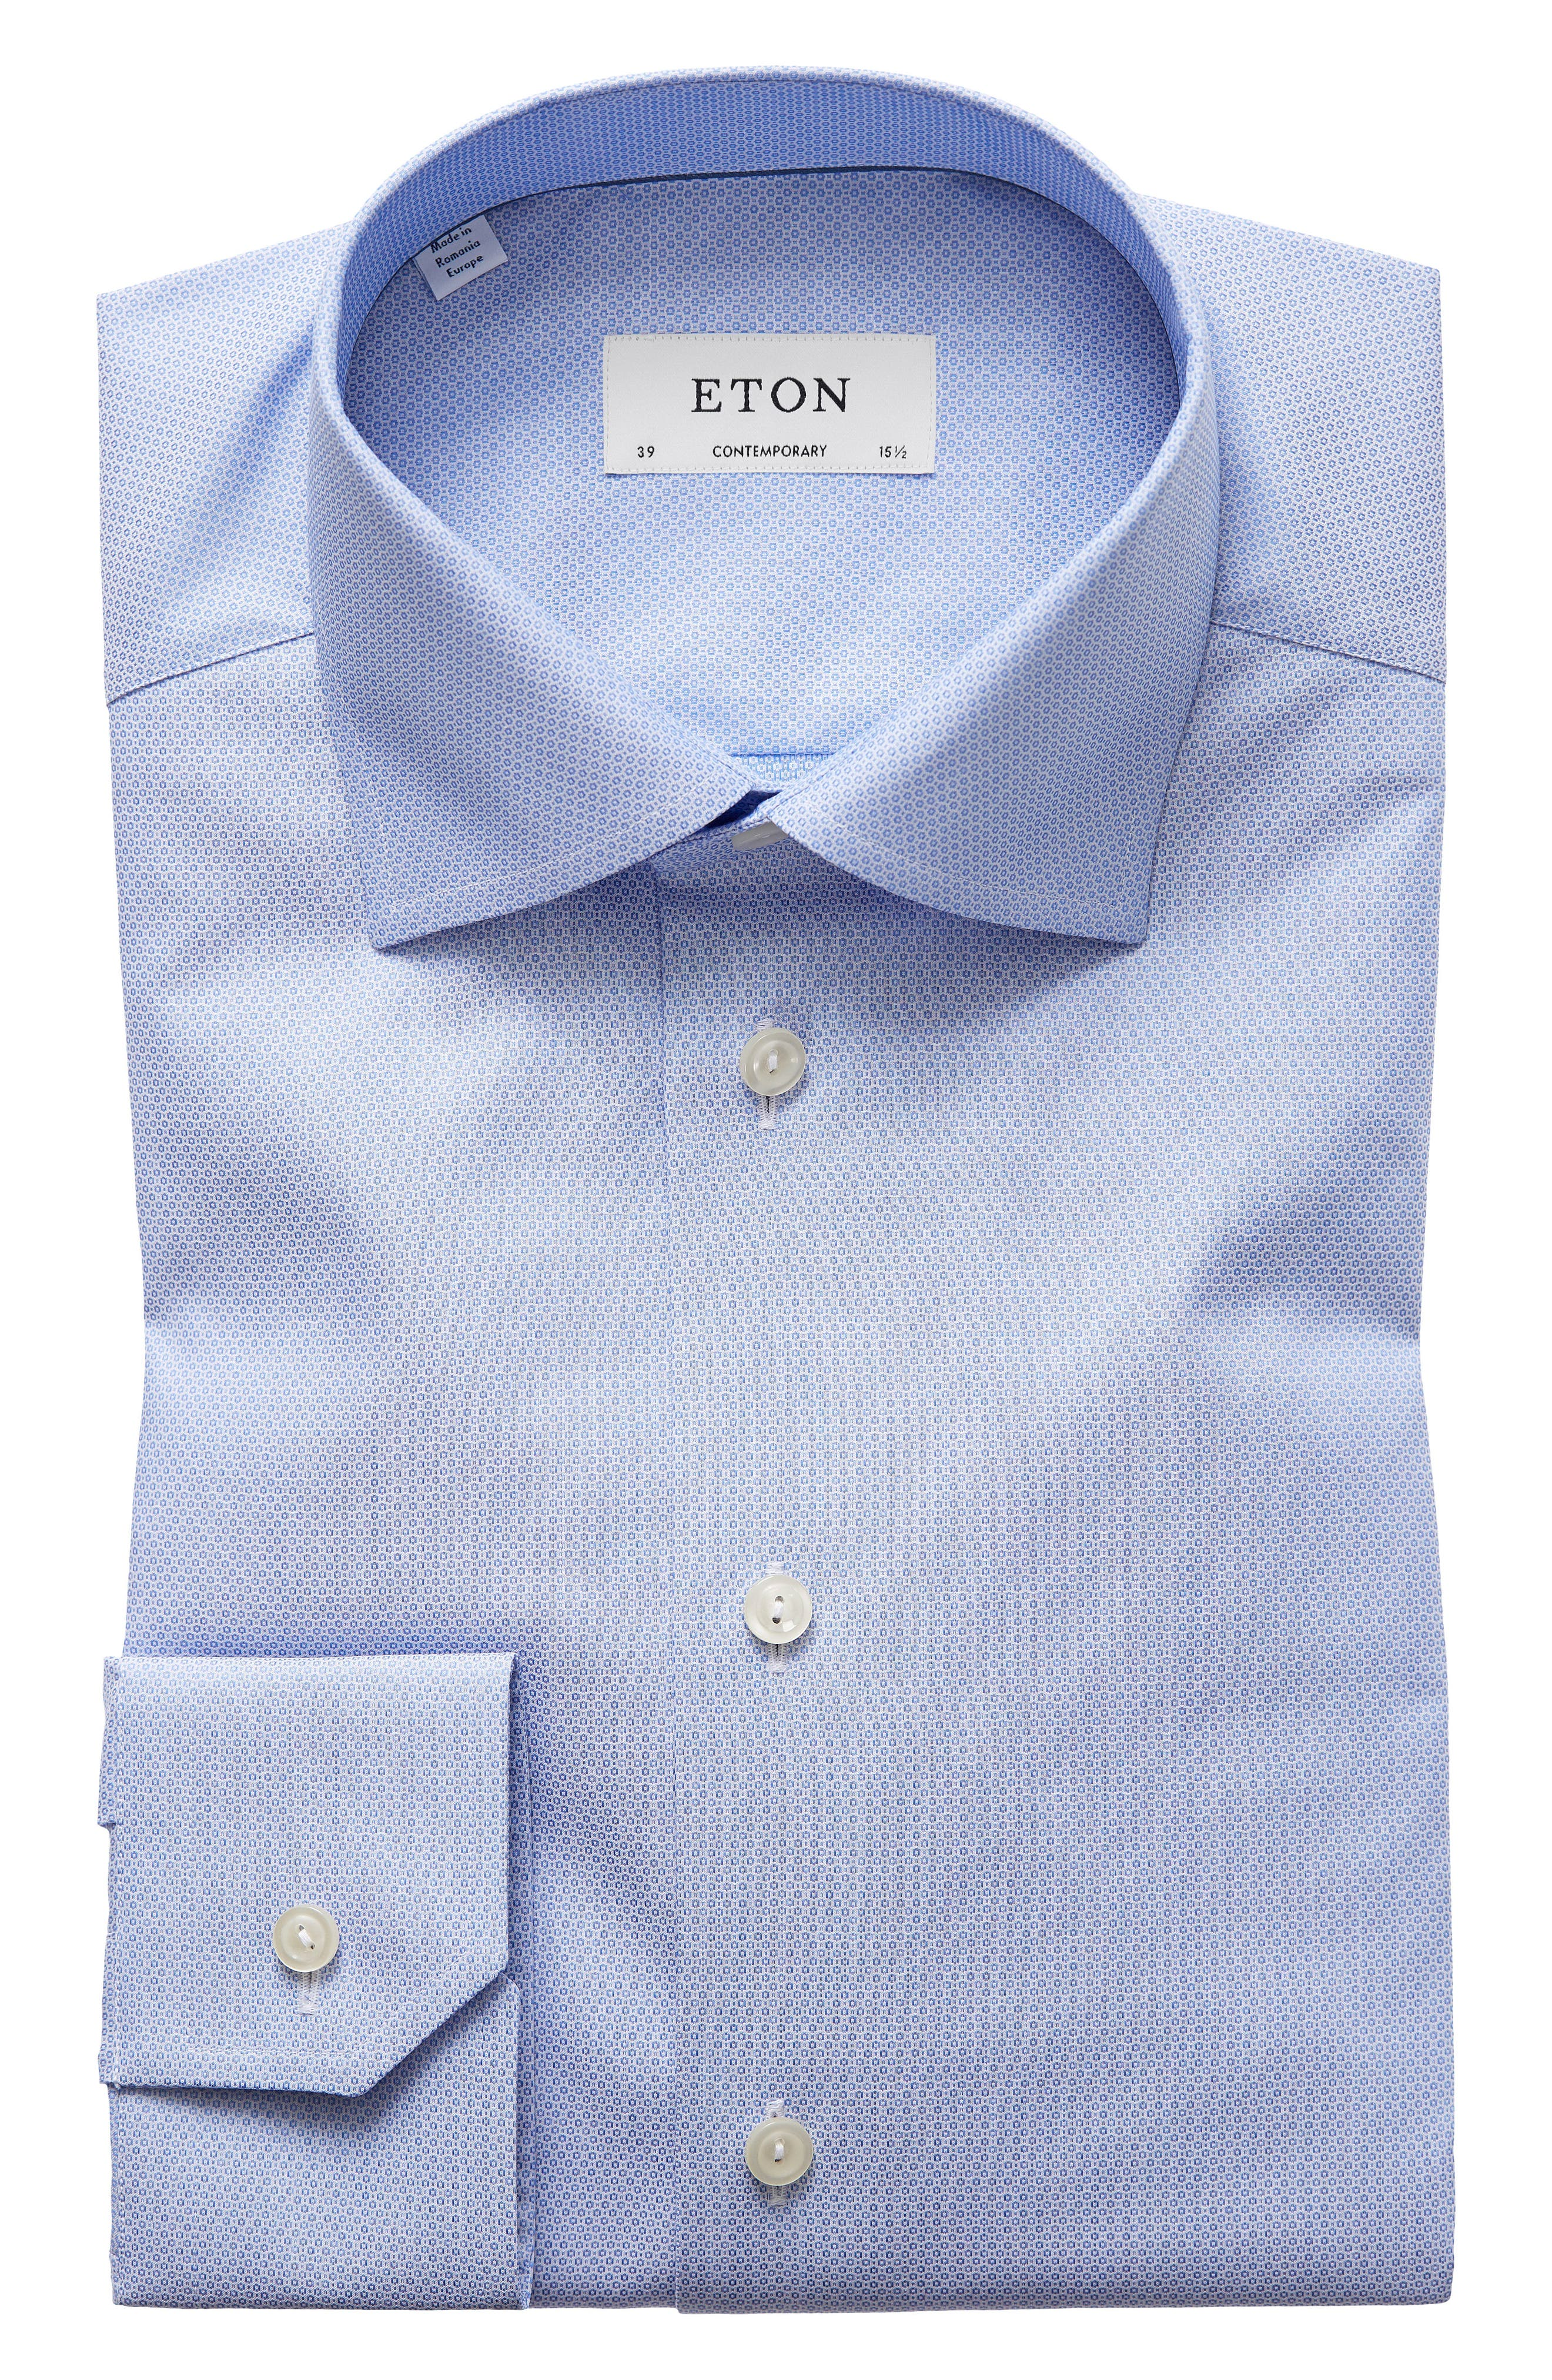 Contemporary Fit Textured Solid Dress Shirt,                             Main thumbnail 1, color,                             Blue